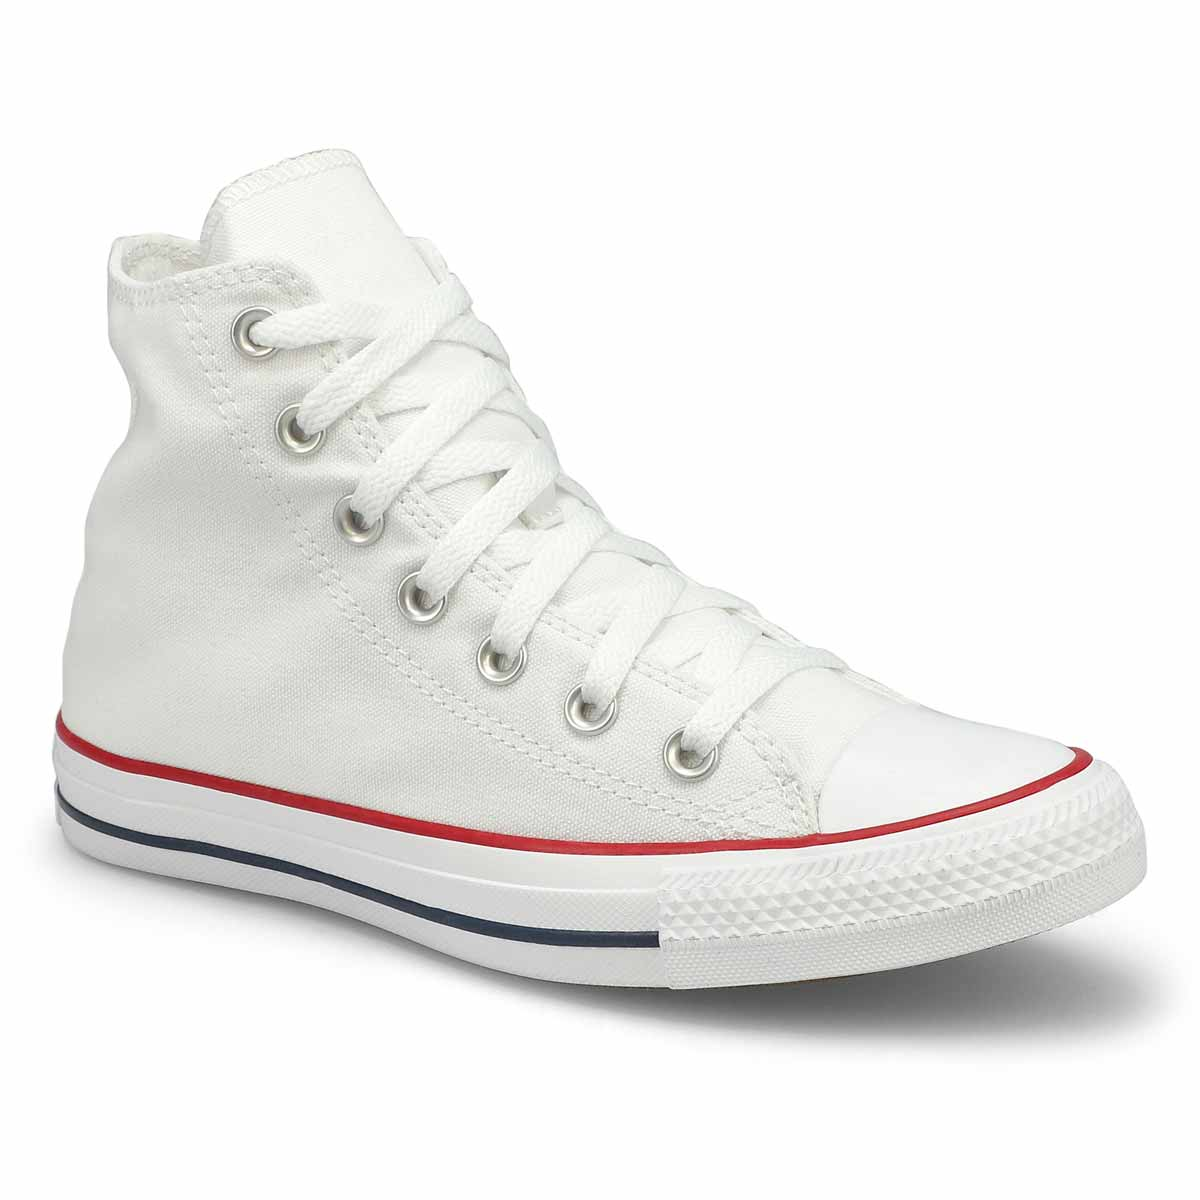 Women's CHUCK TAYLOR CORE HI white sneakers